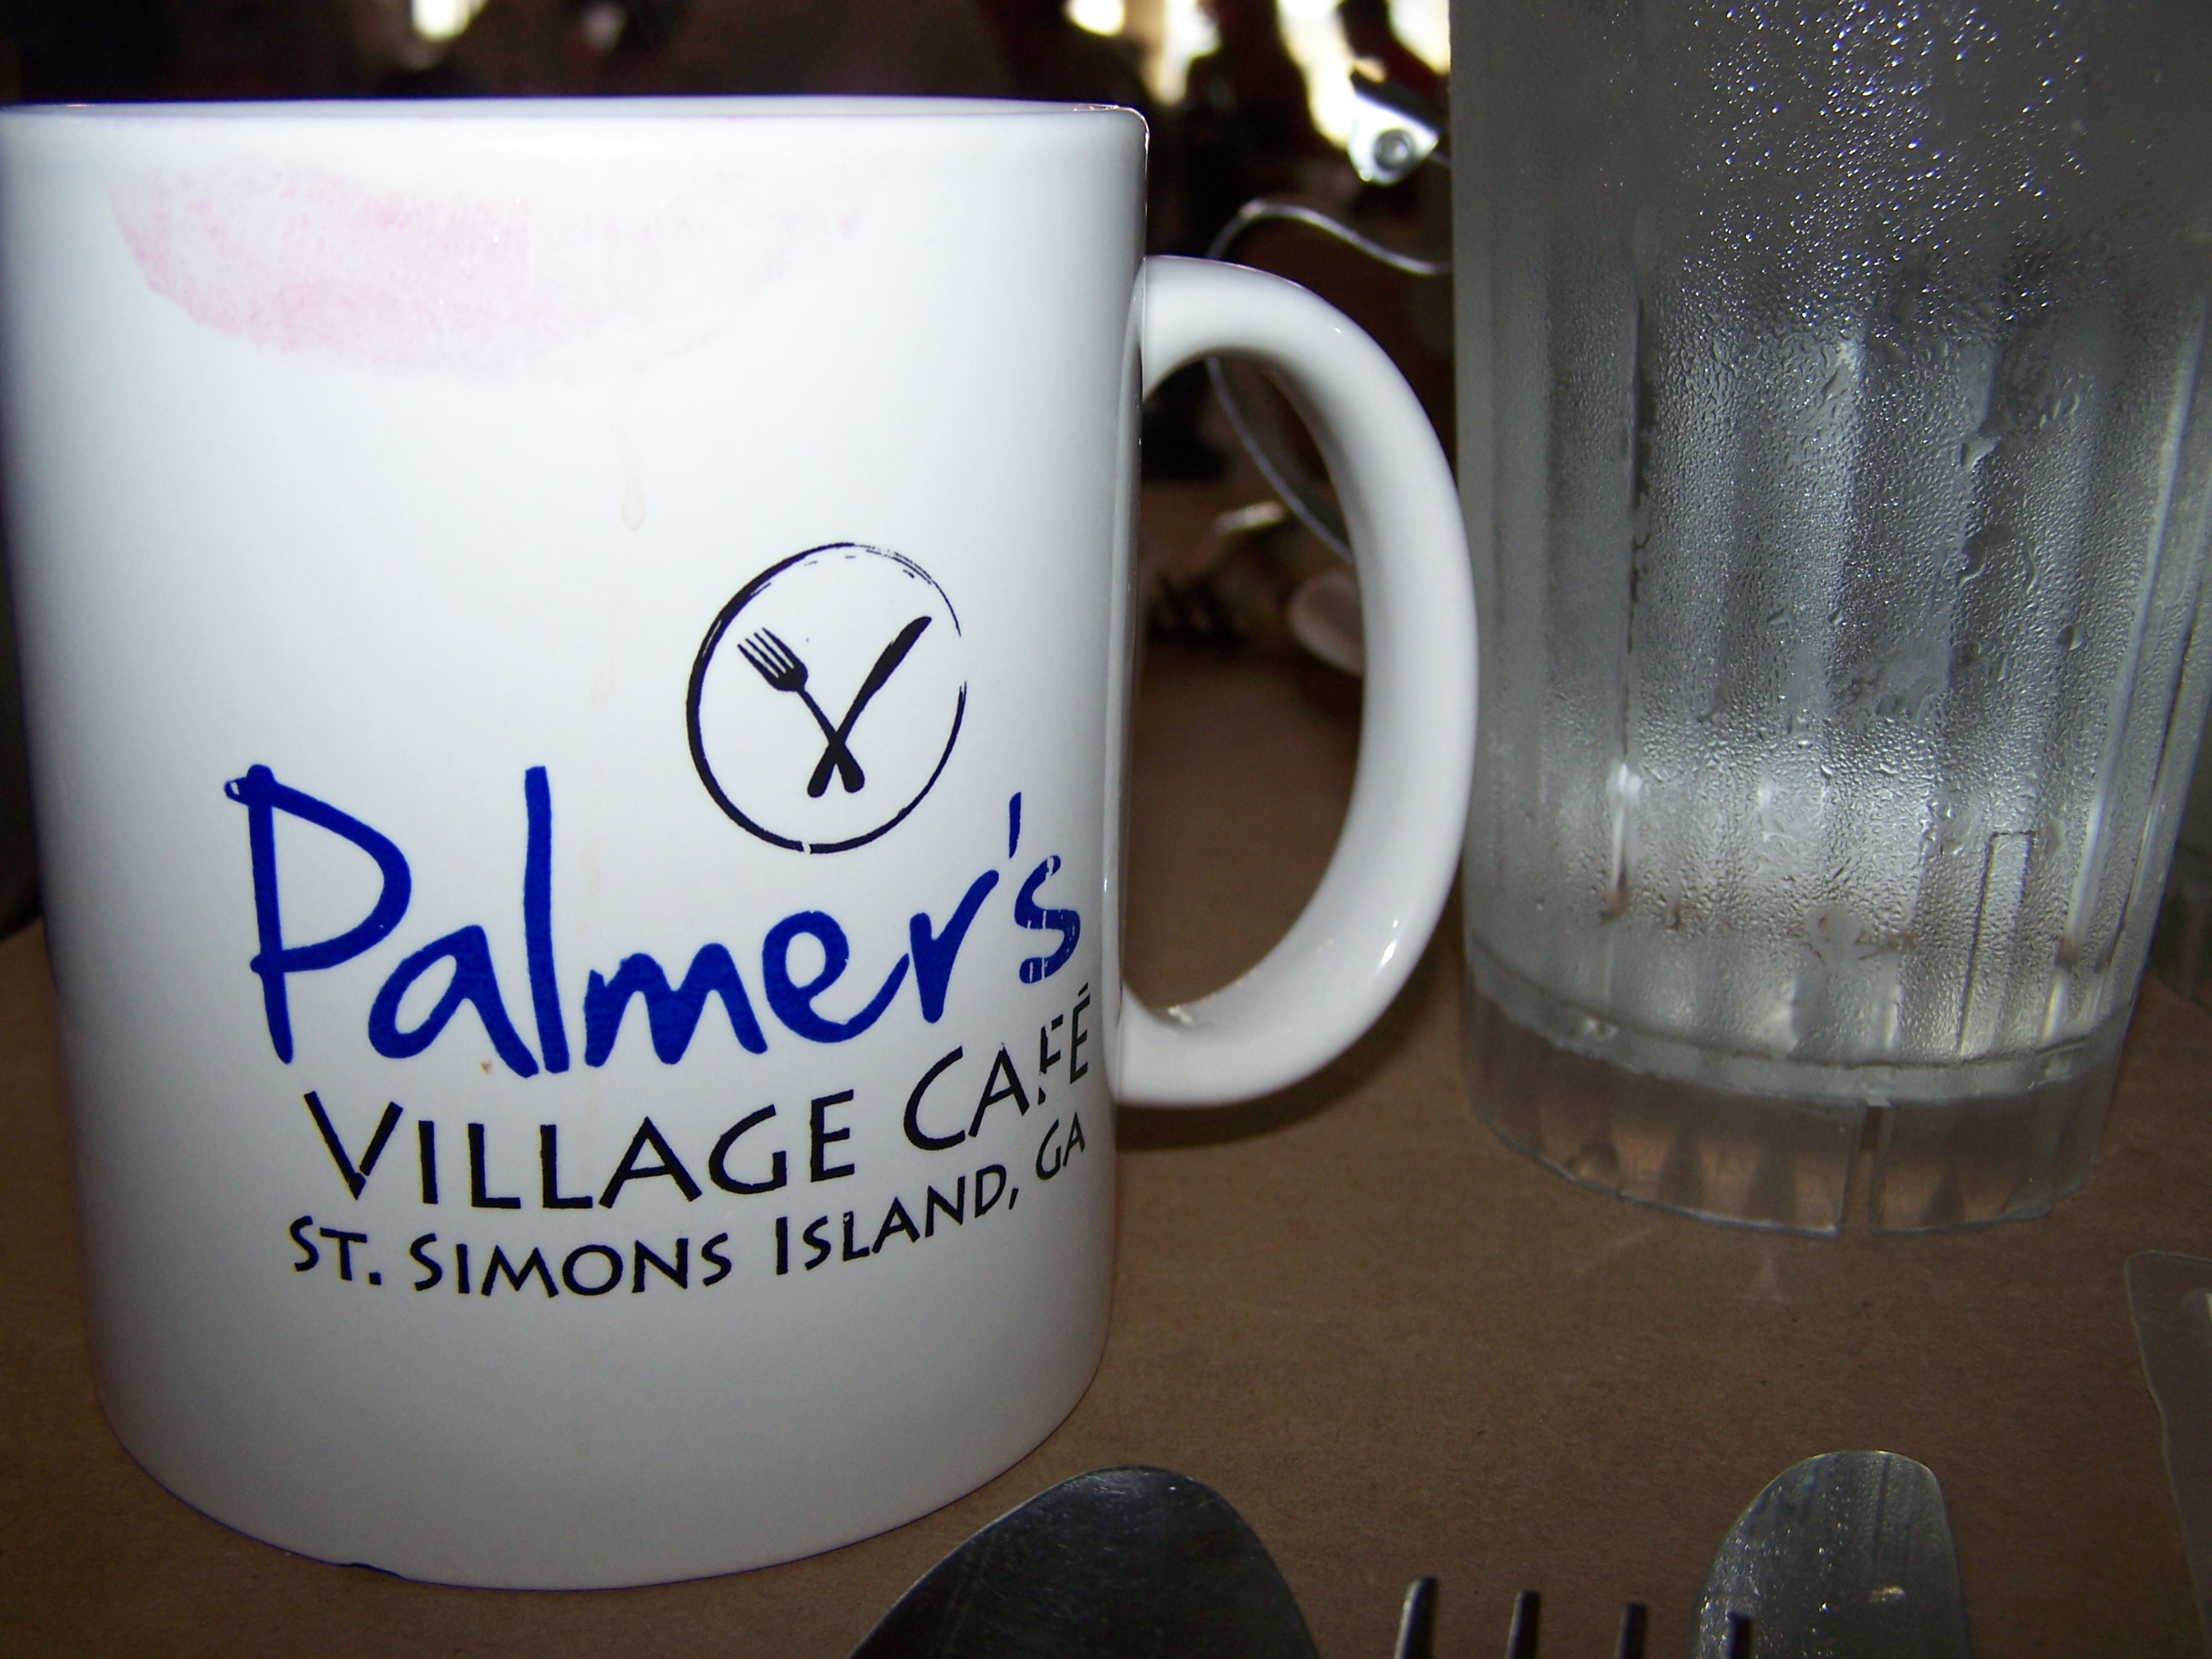 Start the Day at Palmer's Village Cafe